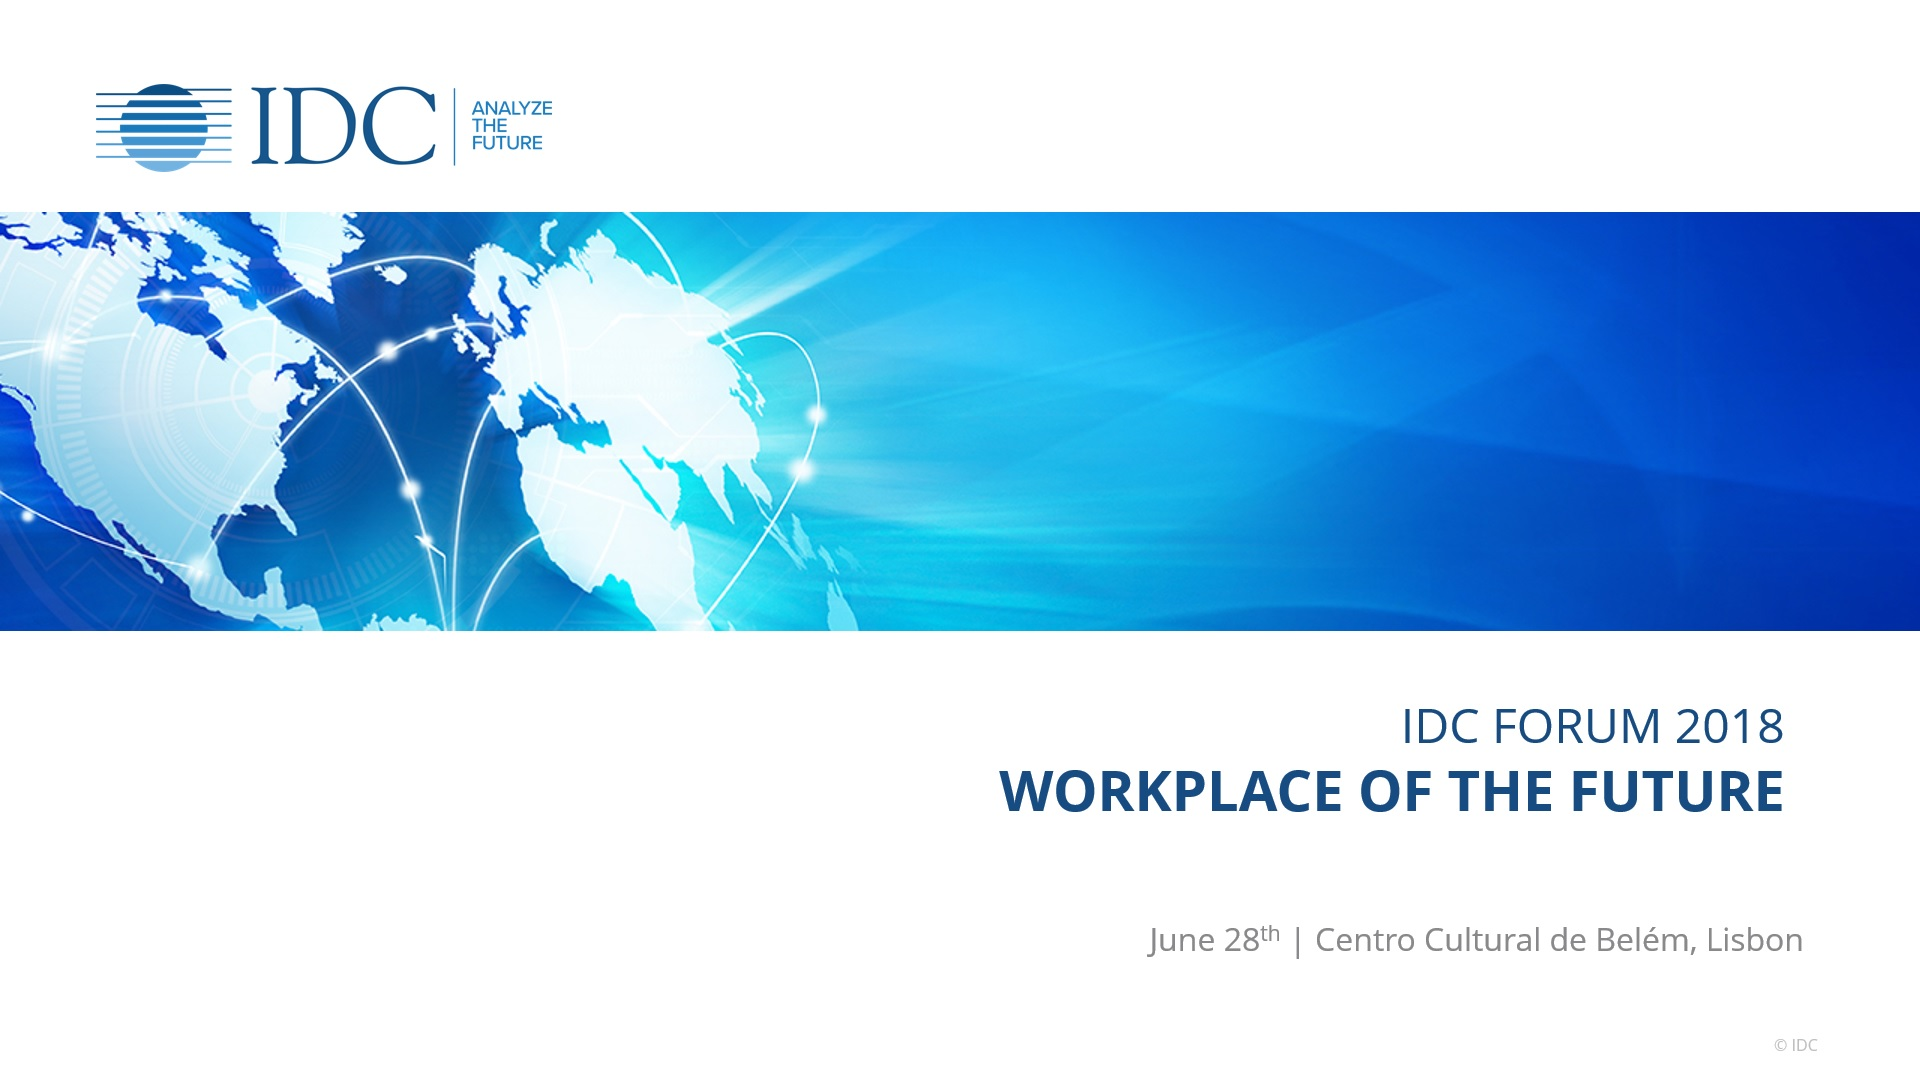 IDC-Forum-Workplace-of-the-Future-2018-Final-Results